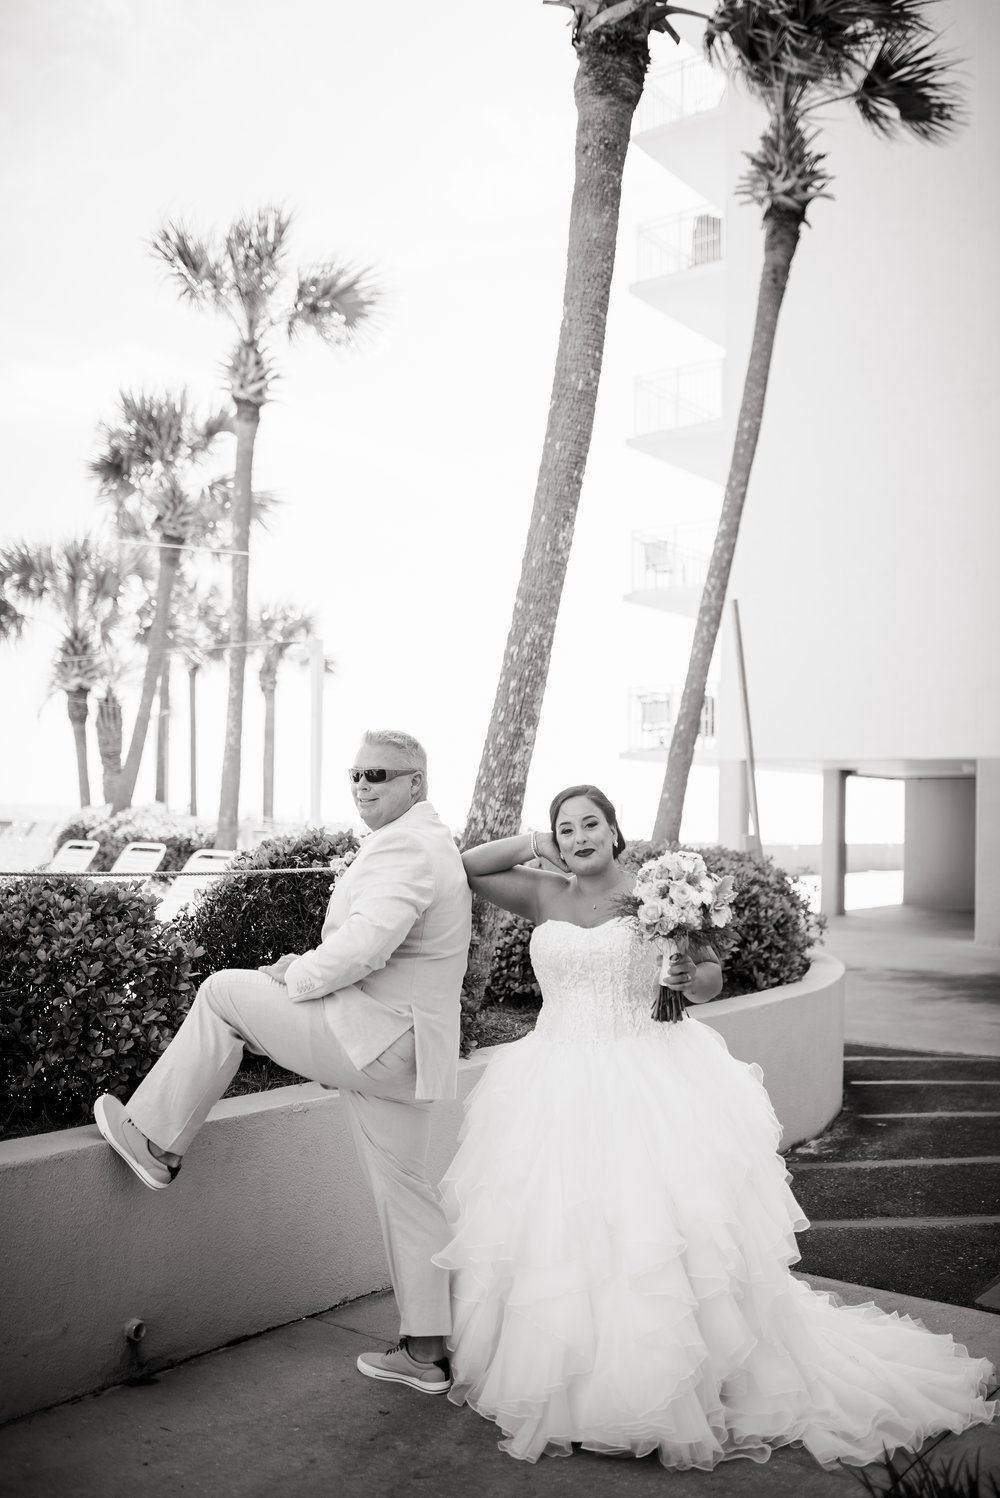 florida-wedding-photographer-kiersten-grant-33.jpg